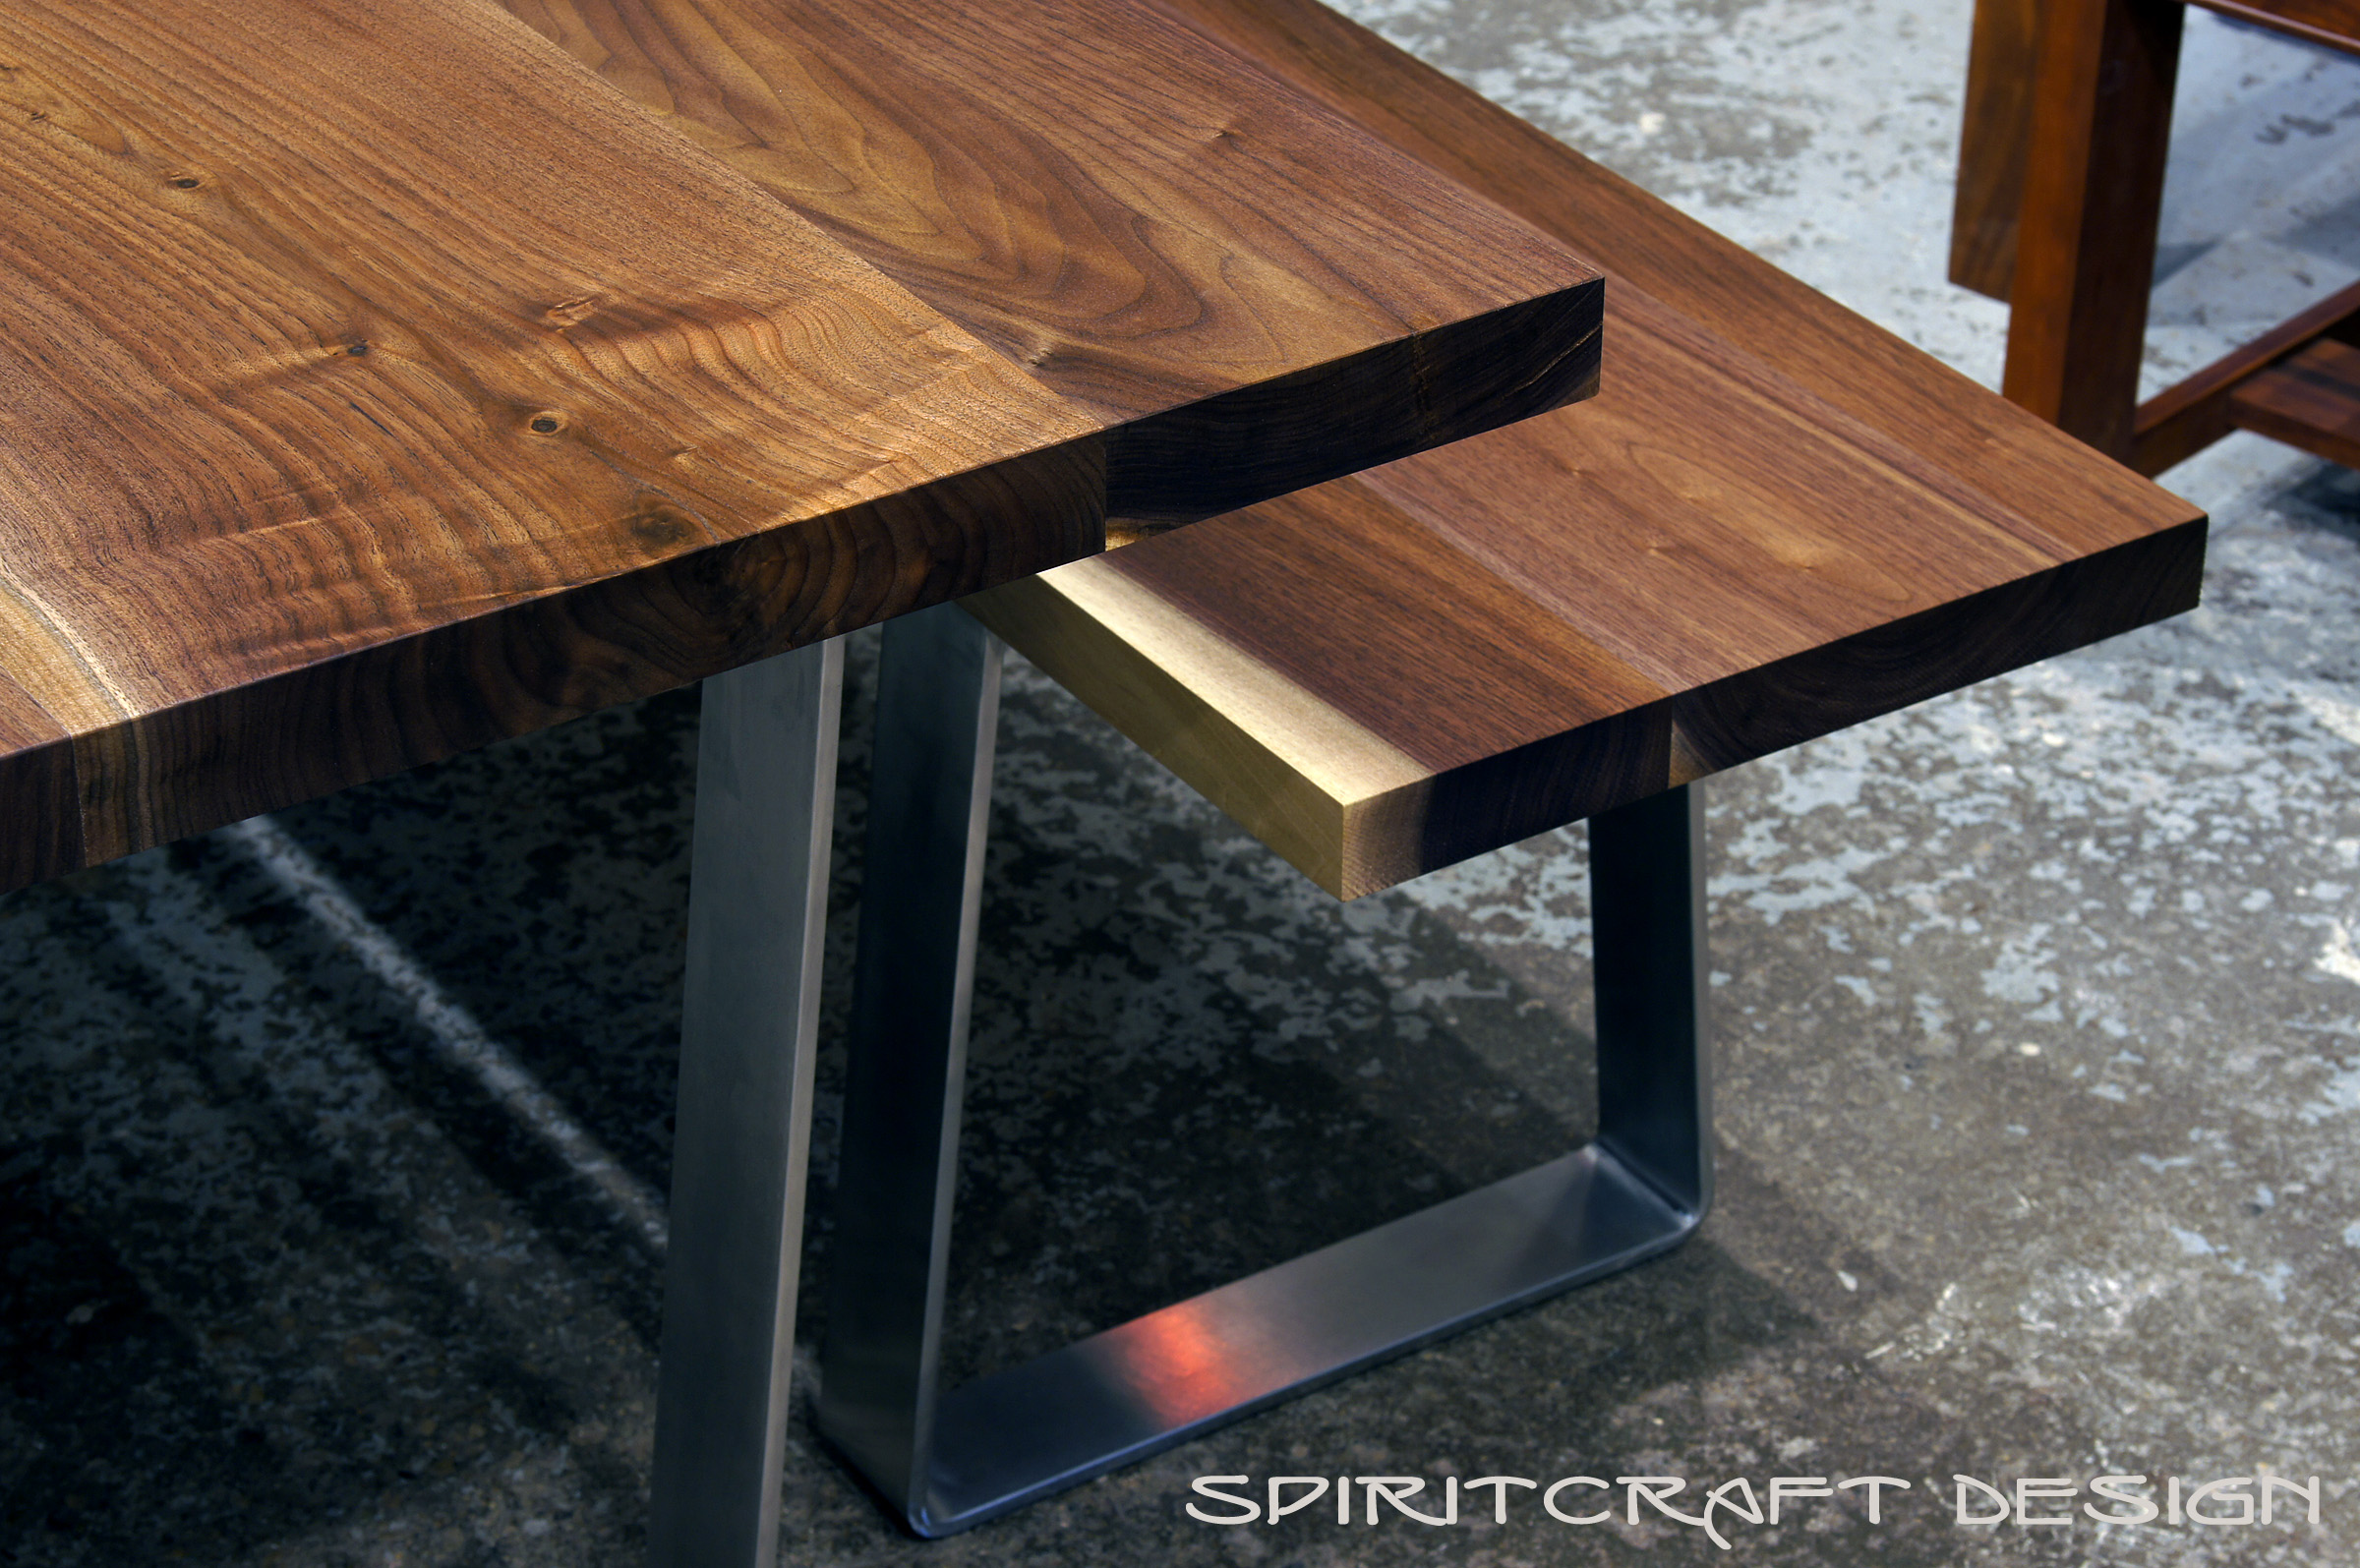 Custom Made Black Walnut Dining Table and Bench with Bent Stainless Steel  Legs for Chicago restaurant